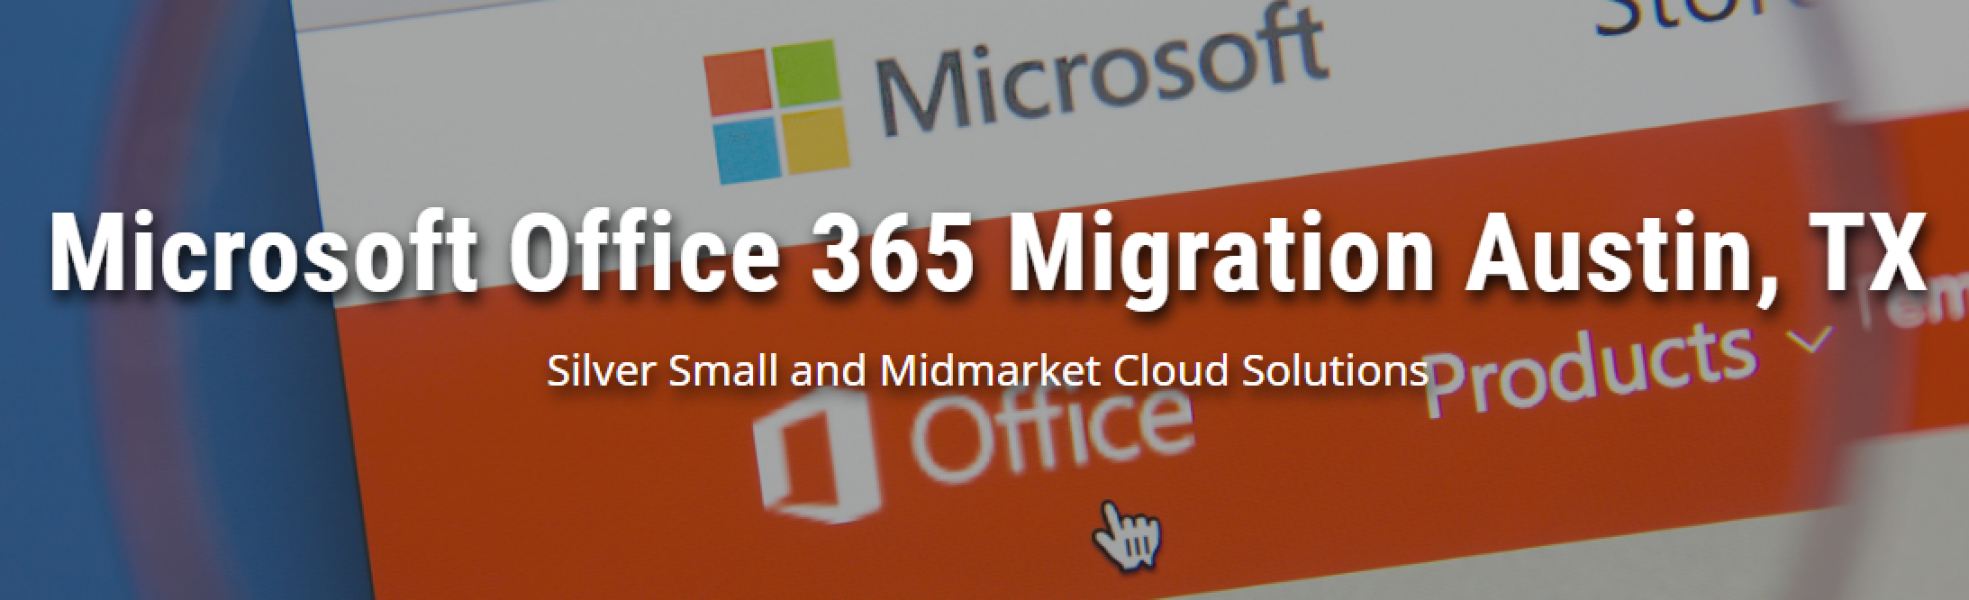 Microsoft Office 365 Migration Services